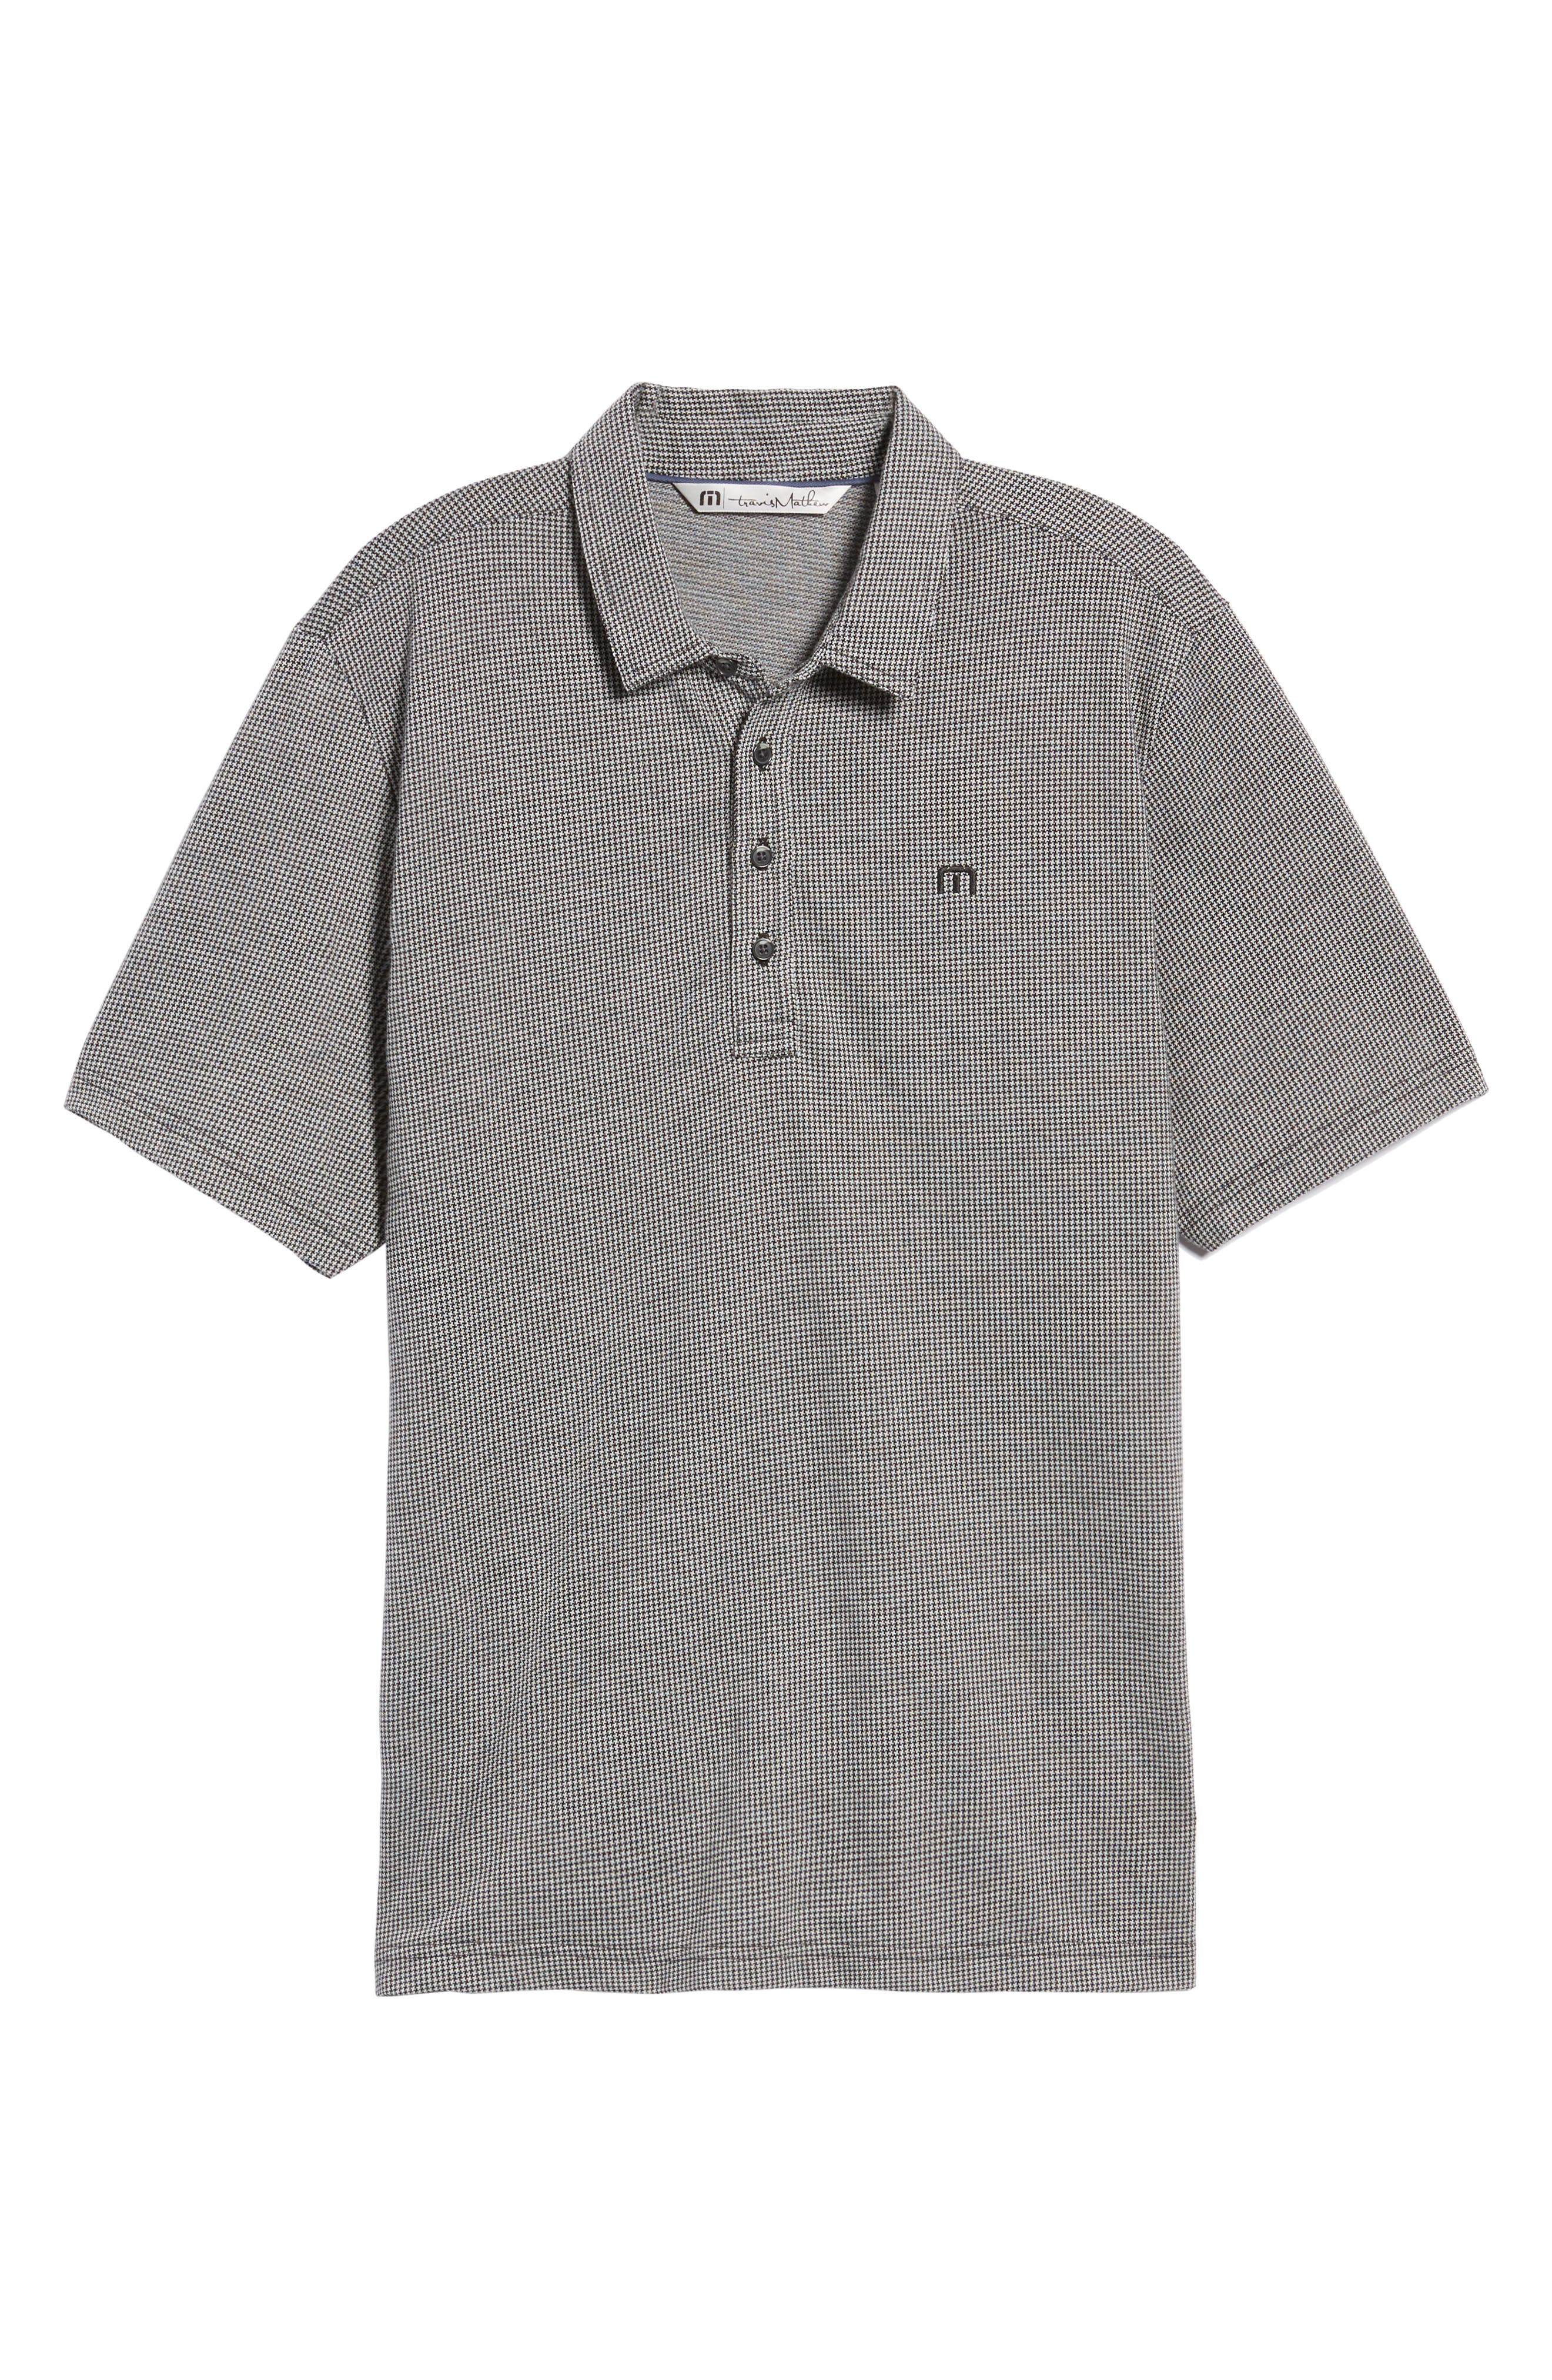 Lawrence Houndstooth Polo,                             Alternate thumbnail 6, color,                             Black/ Microchip